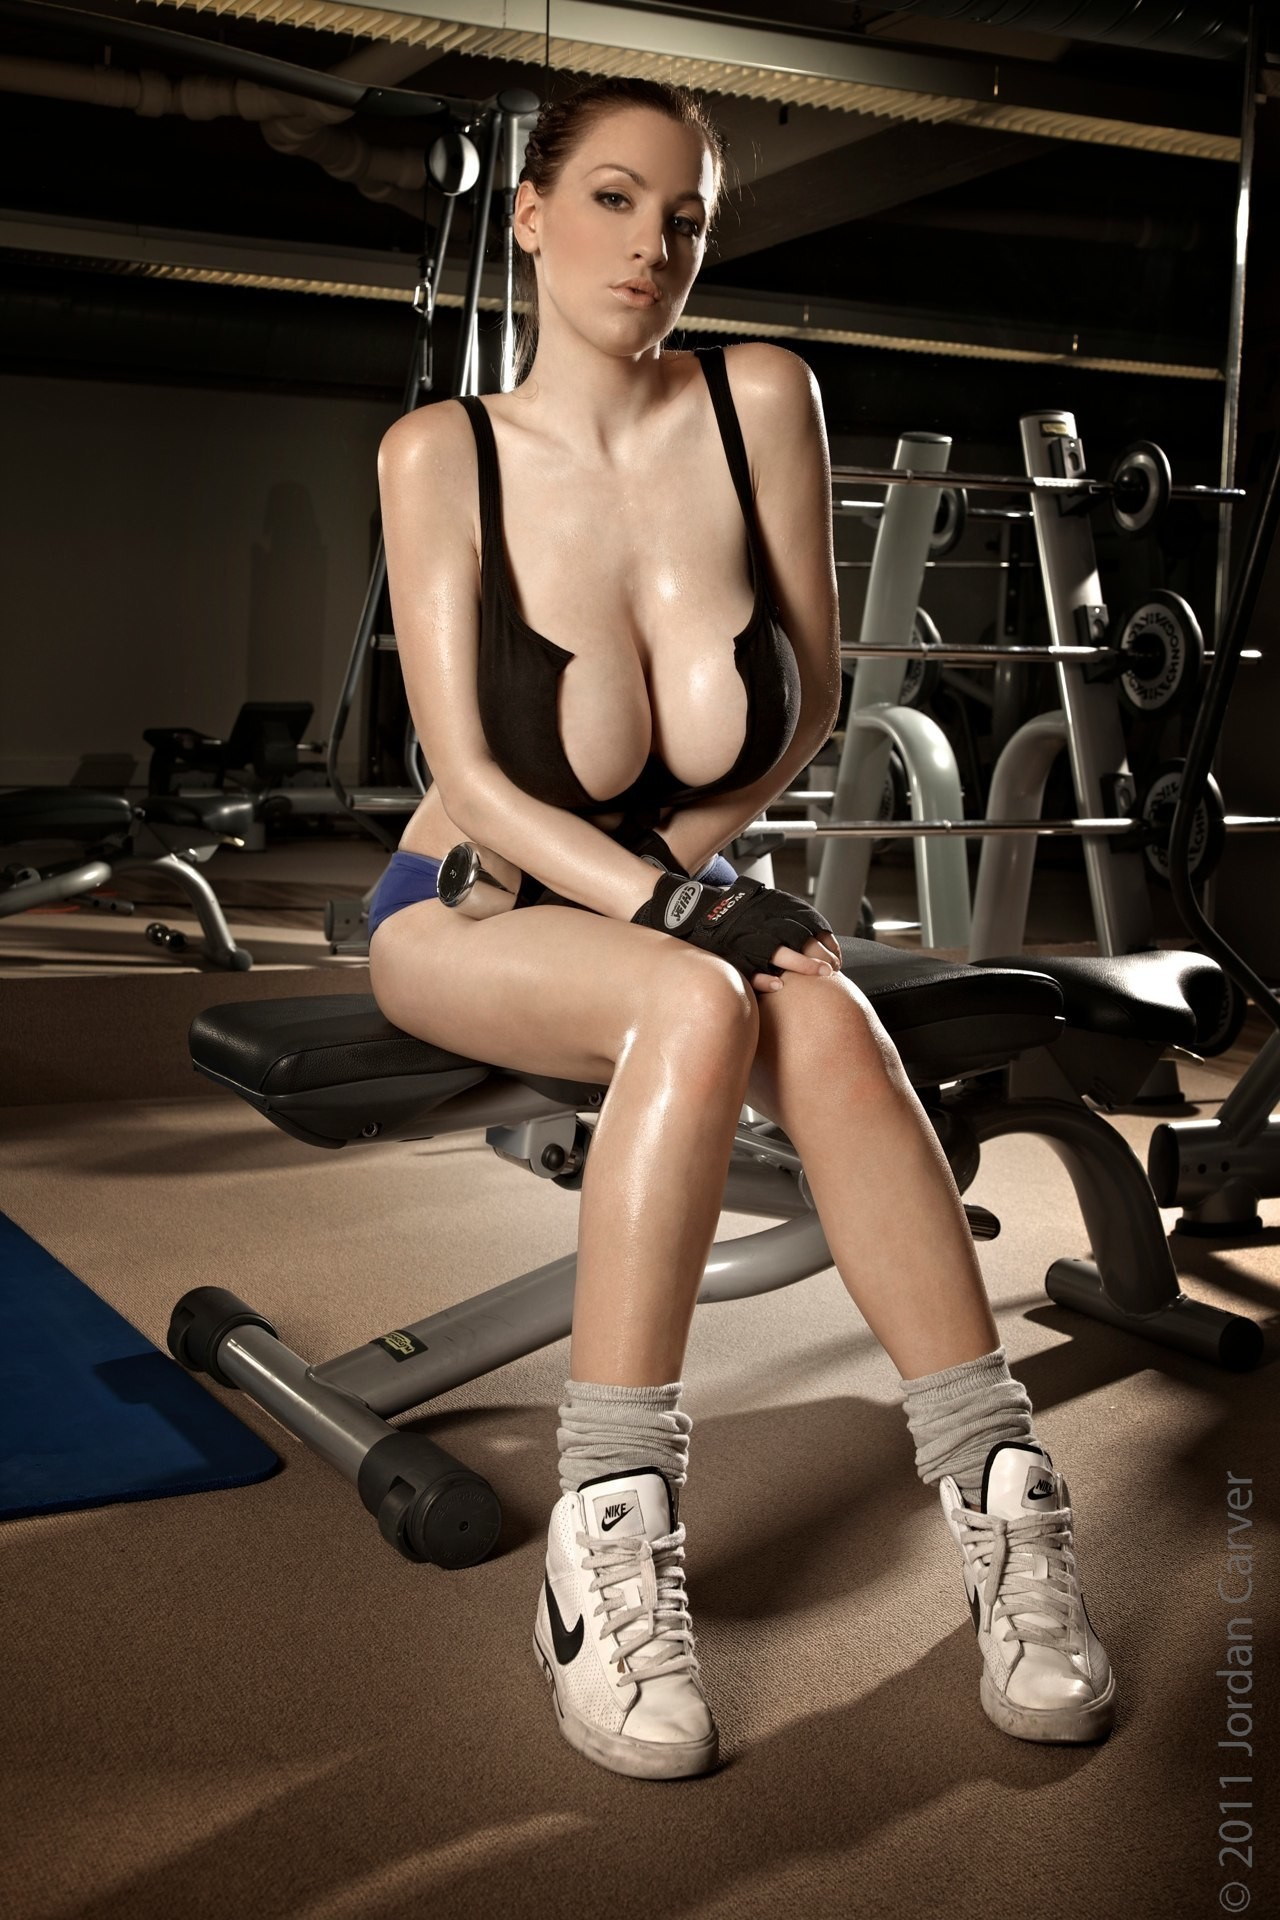 Nike Jordan Carver workout HD Wallpaper